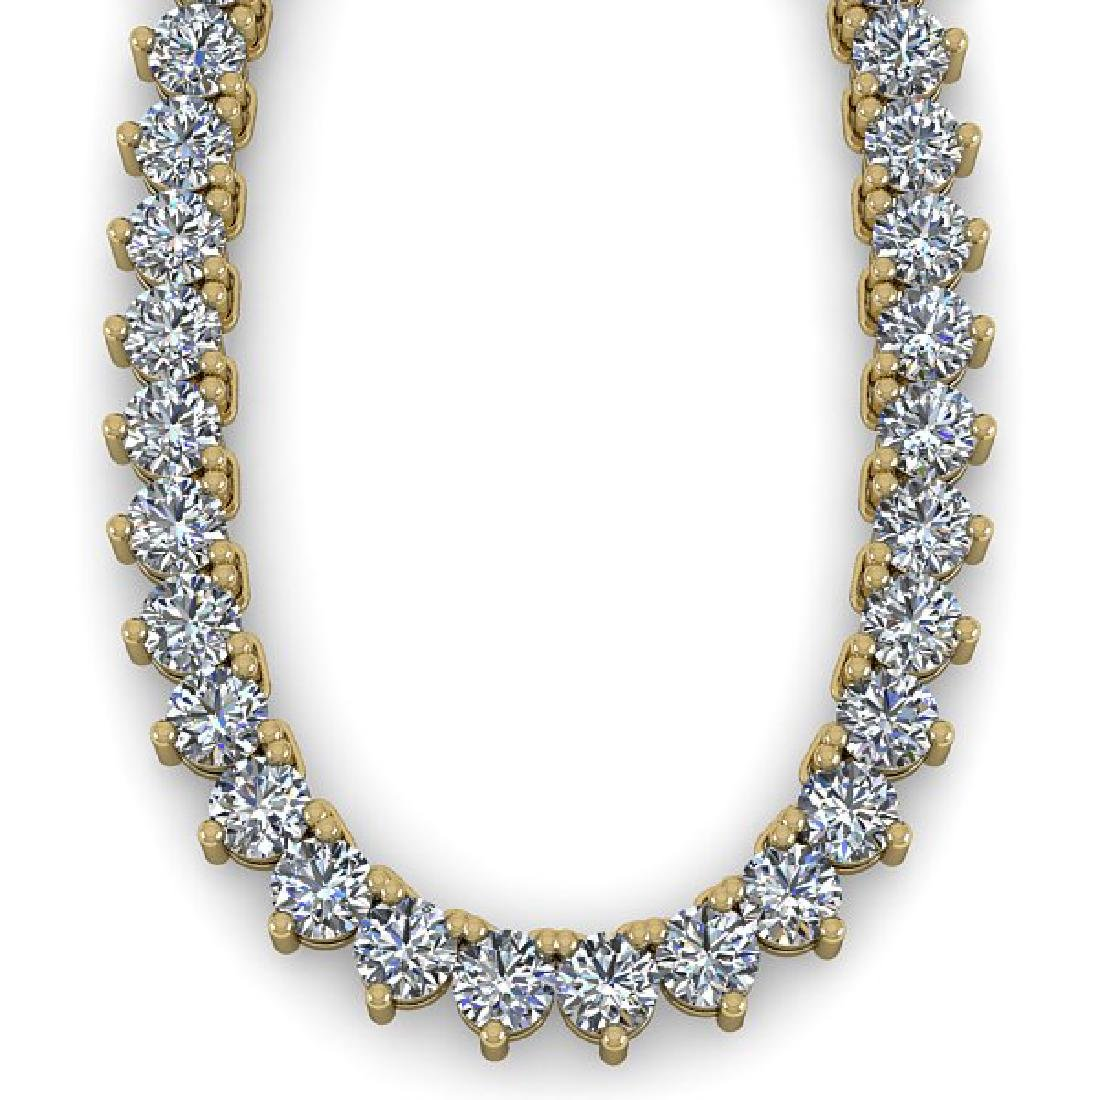 38 CTW Solitaire SI Diamond Necklace 18K Yellow Gold